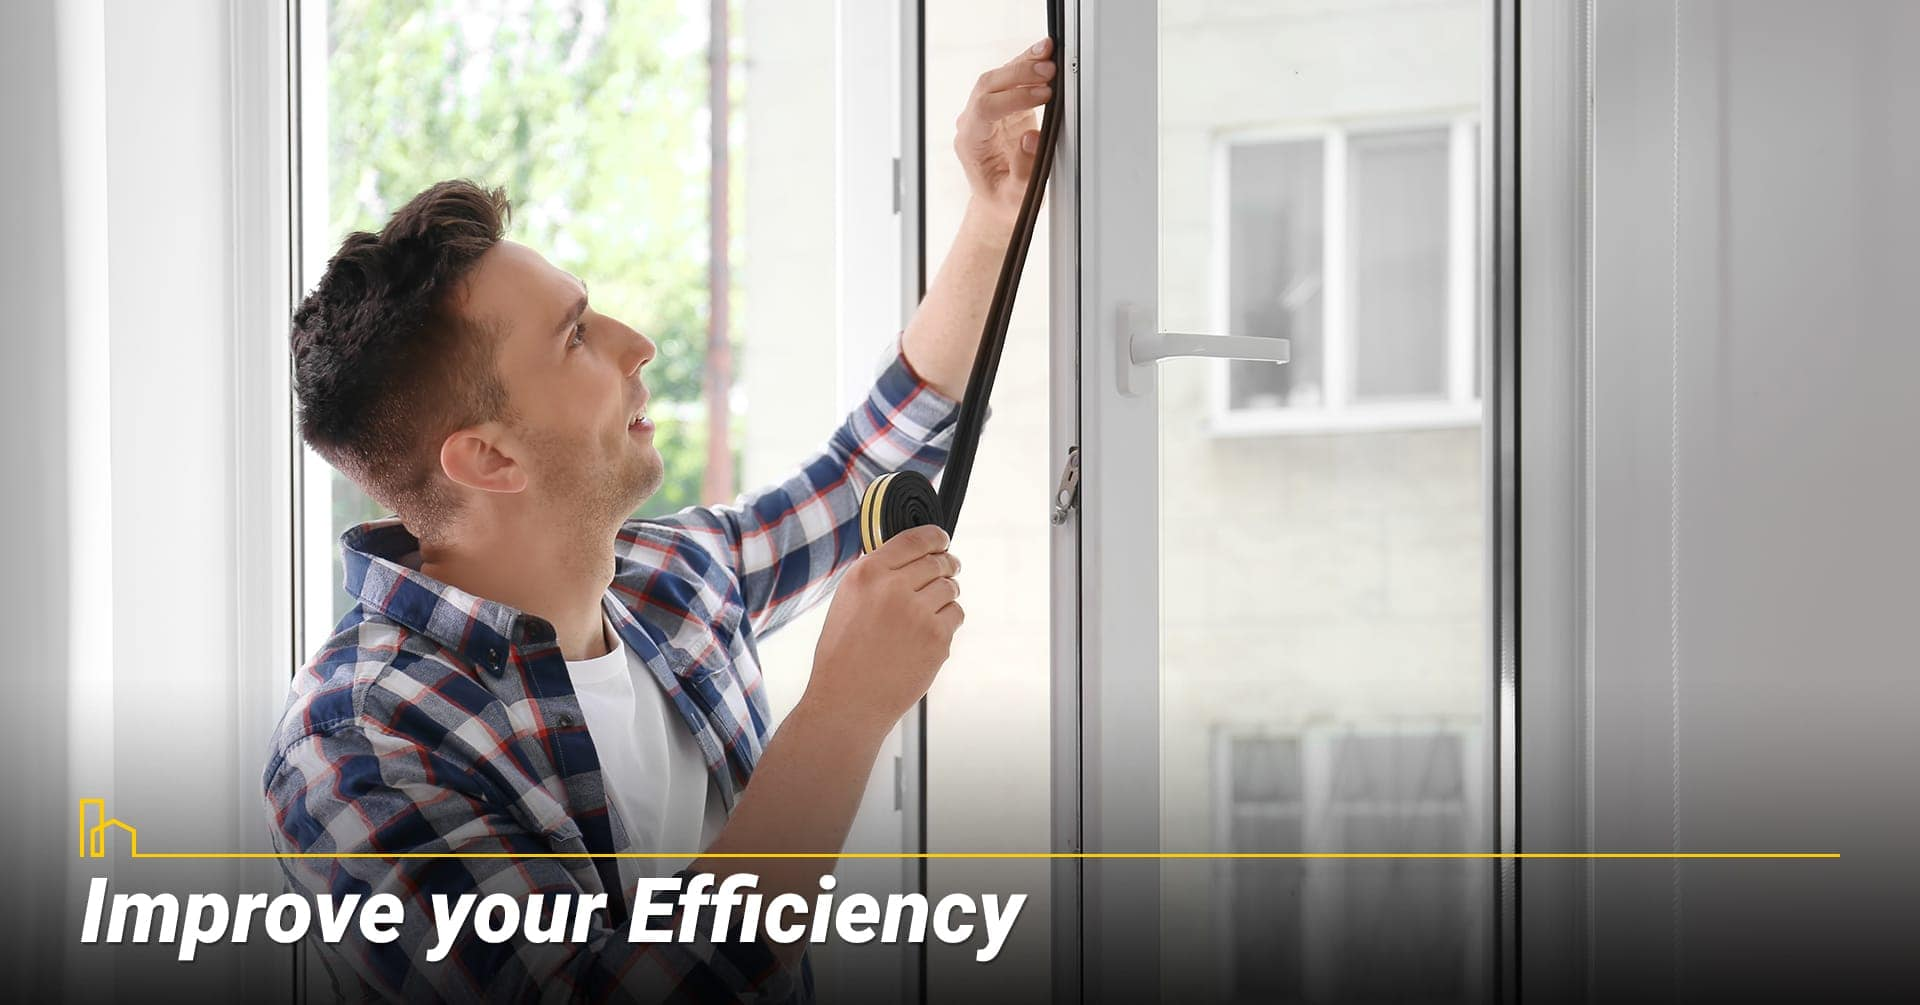 Improve your Efficiency, prevent drafts from windows